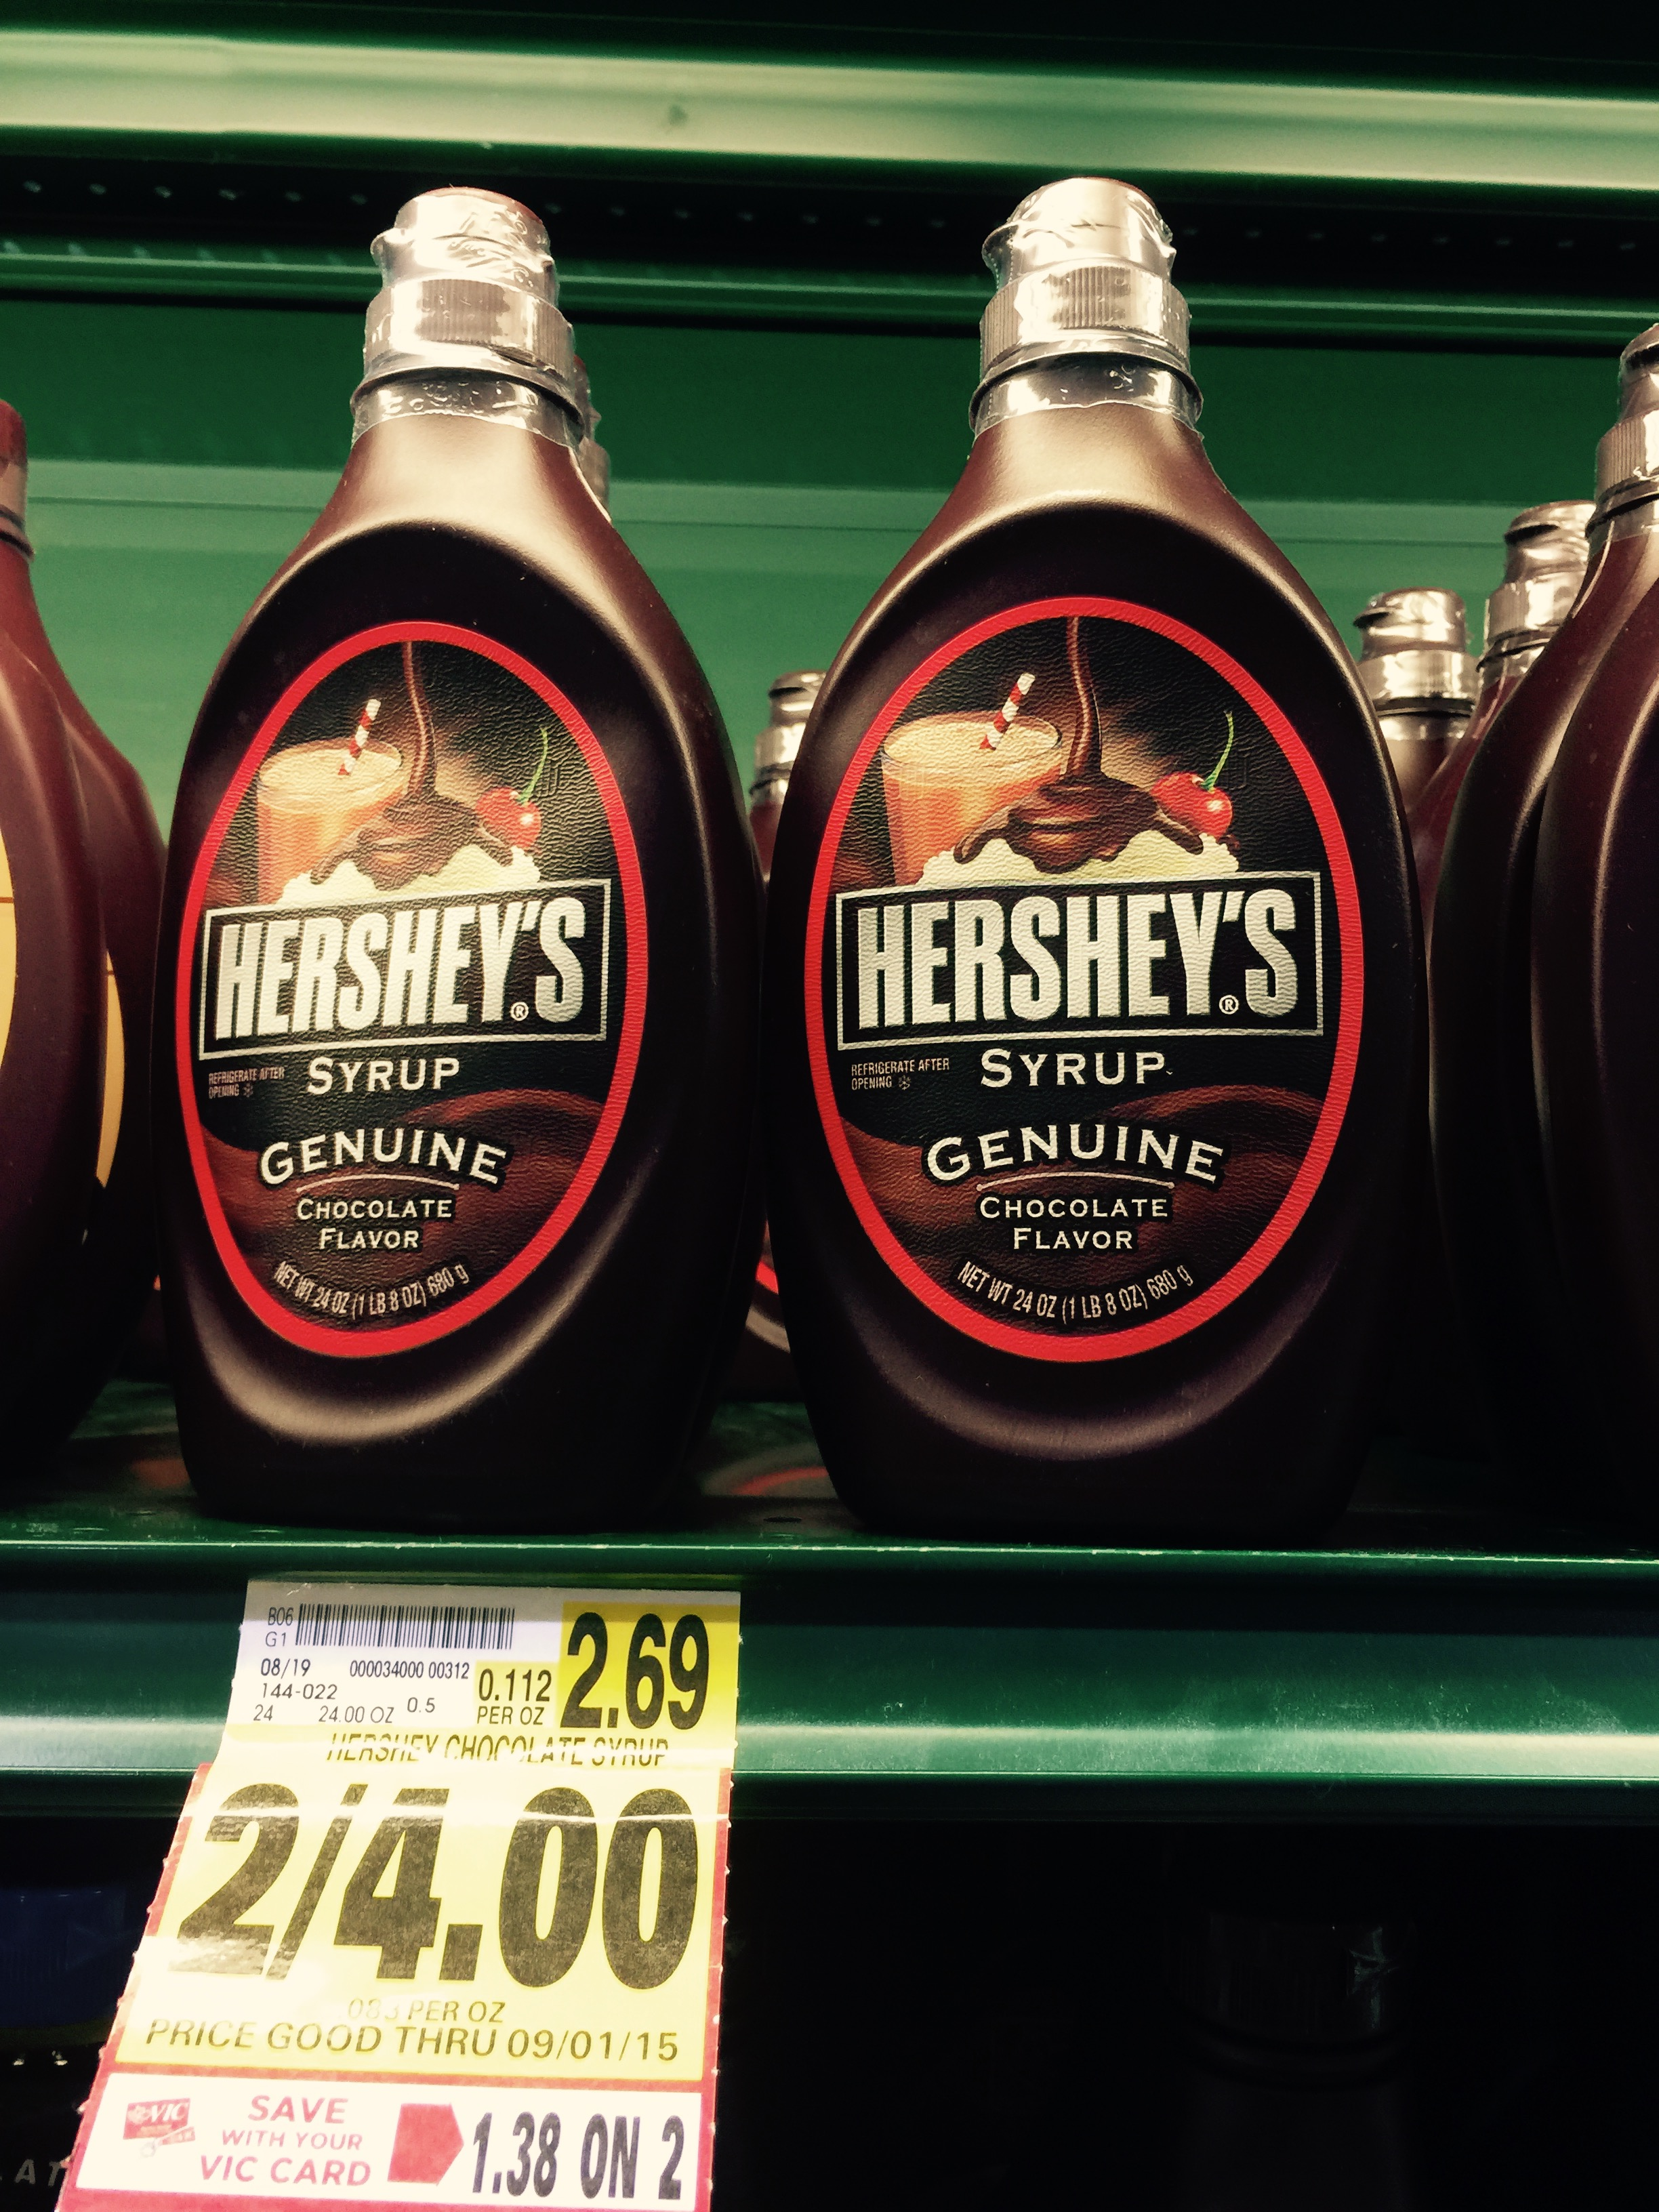 Hershey Chocolate Syrup $1.50! - The Harris Teeter Deals